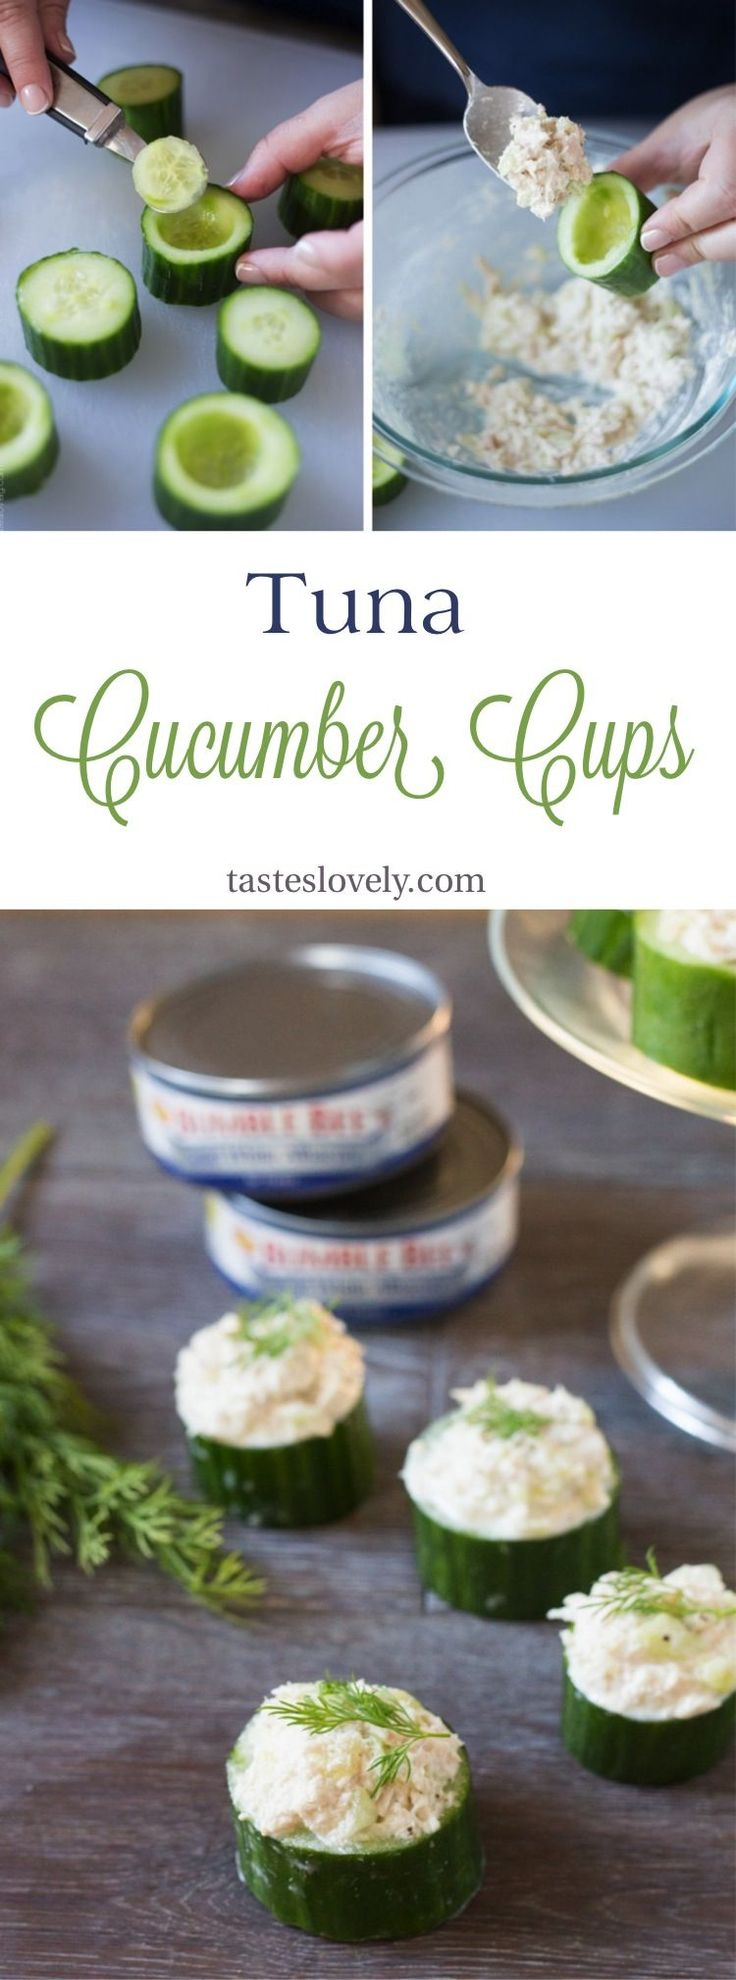 Party Appetizer Ideas | Healthy and delicious Tuna In Cucumber Cups. A cute lunch, snack or appetizer!